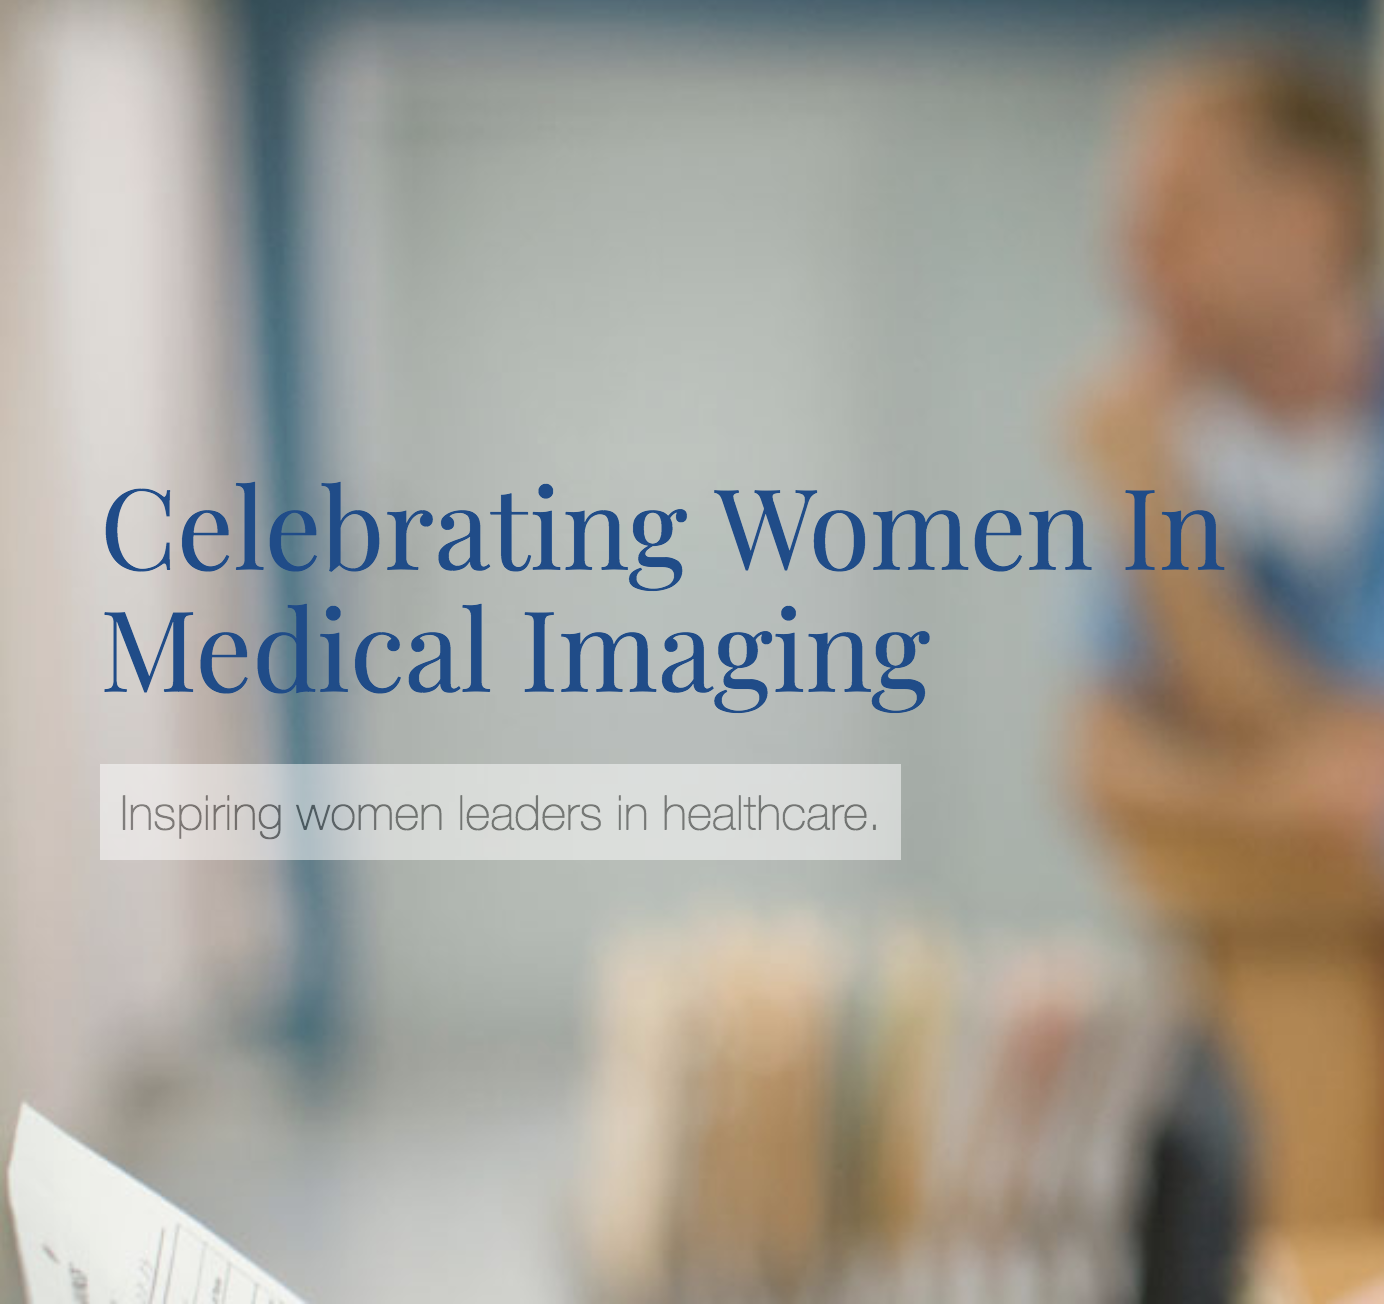 Celebrating Women in Medical Imaging